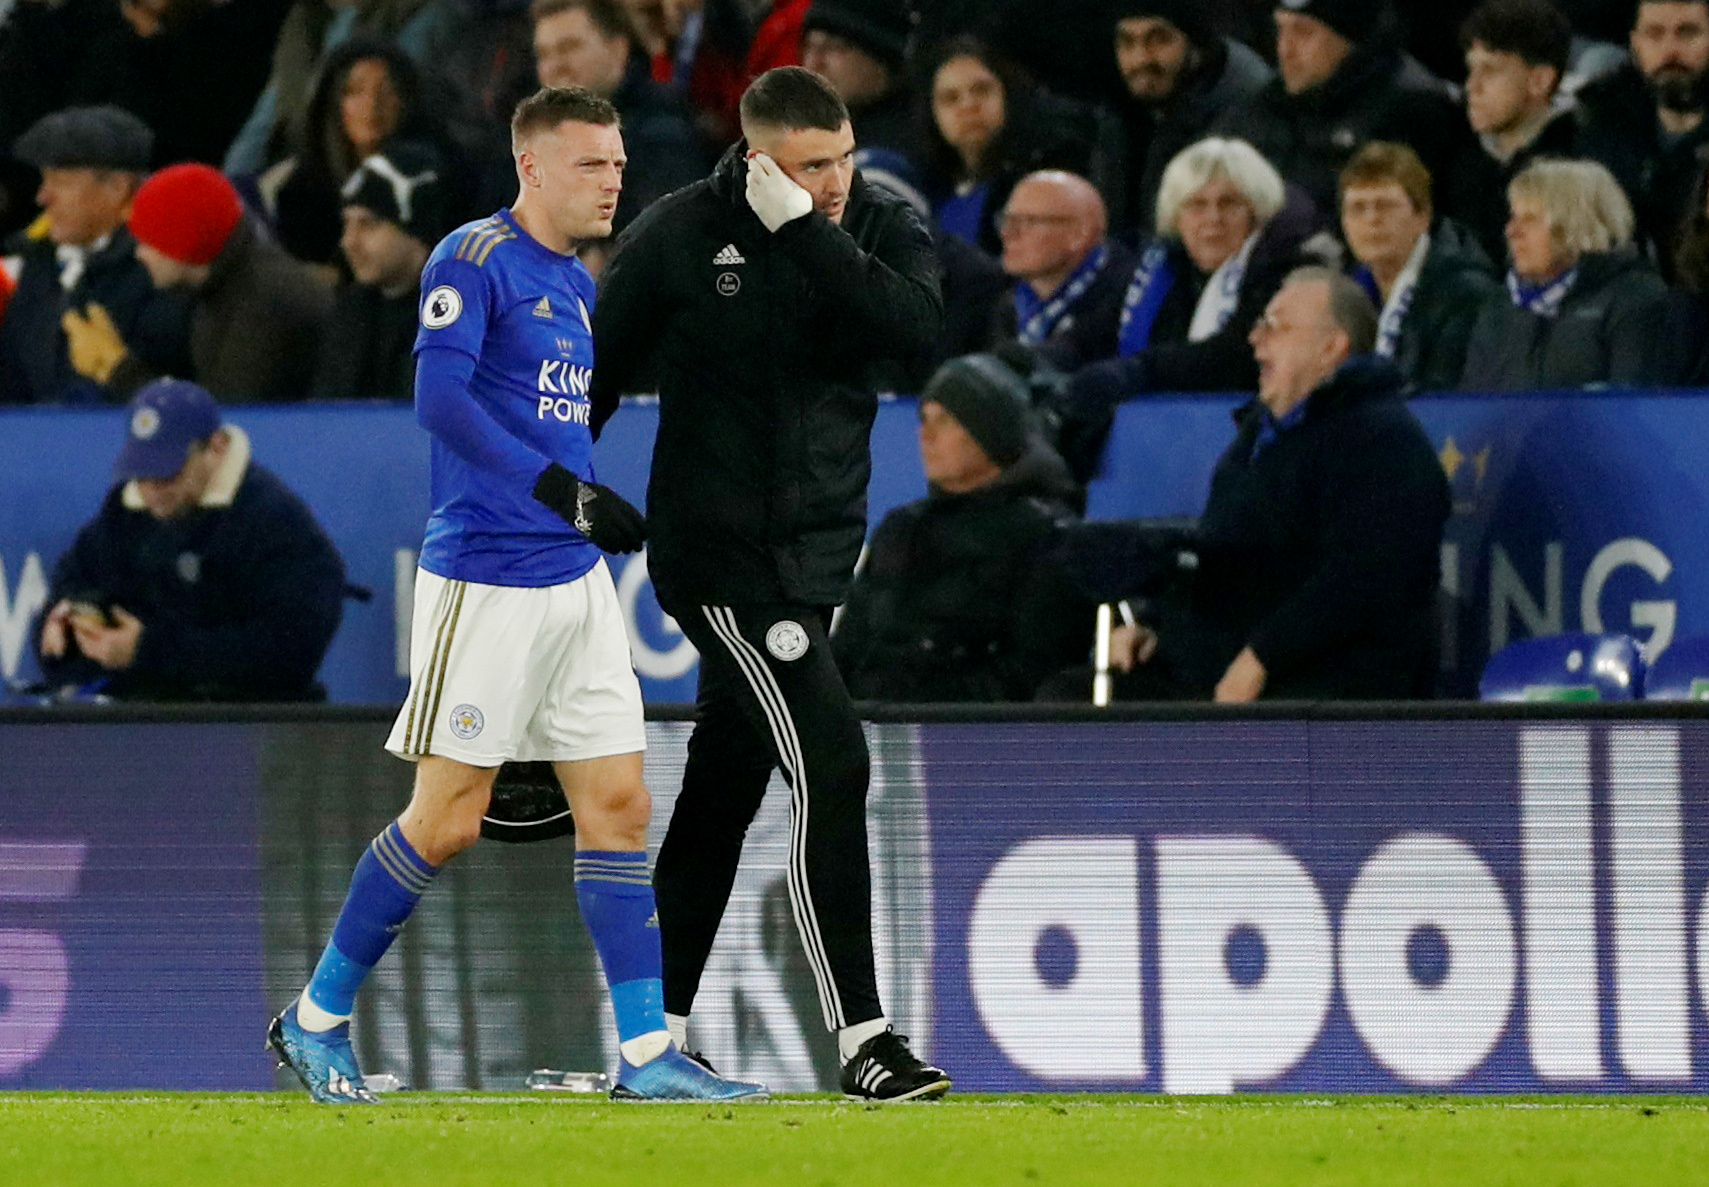 Vardy cleared for EFL Cup semi-final action ahead of Gameweek 25